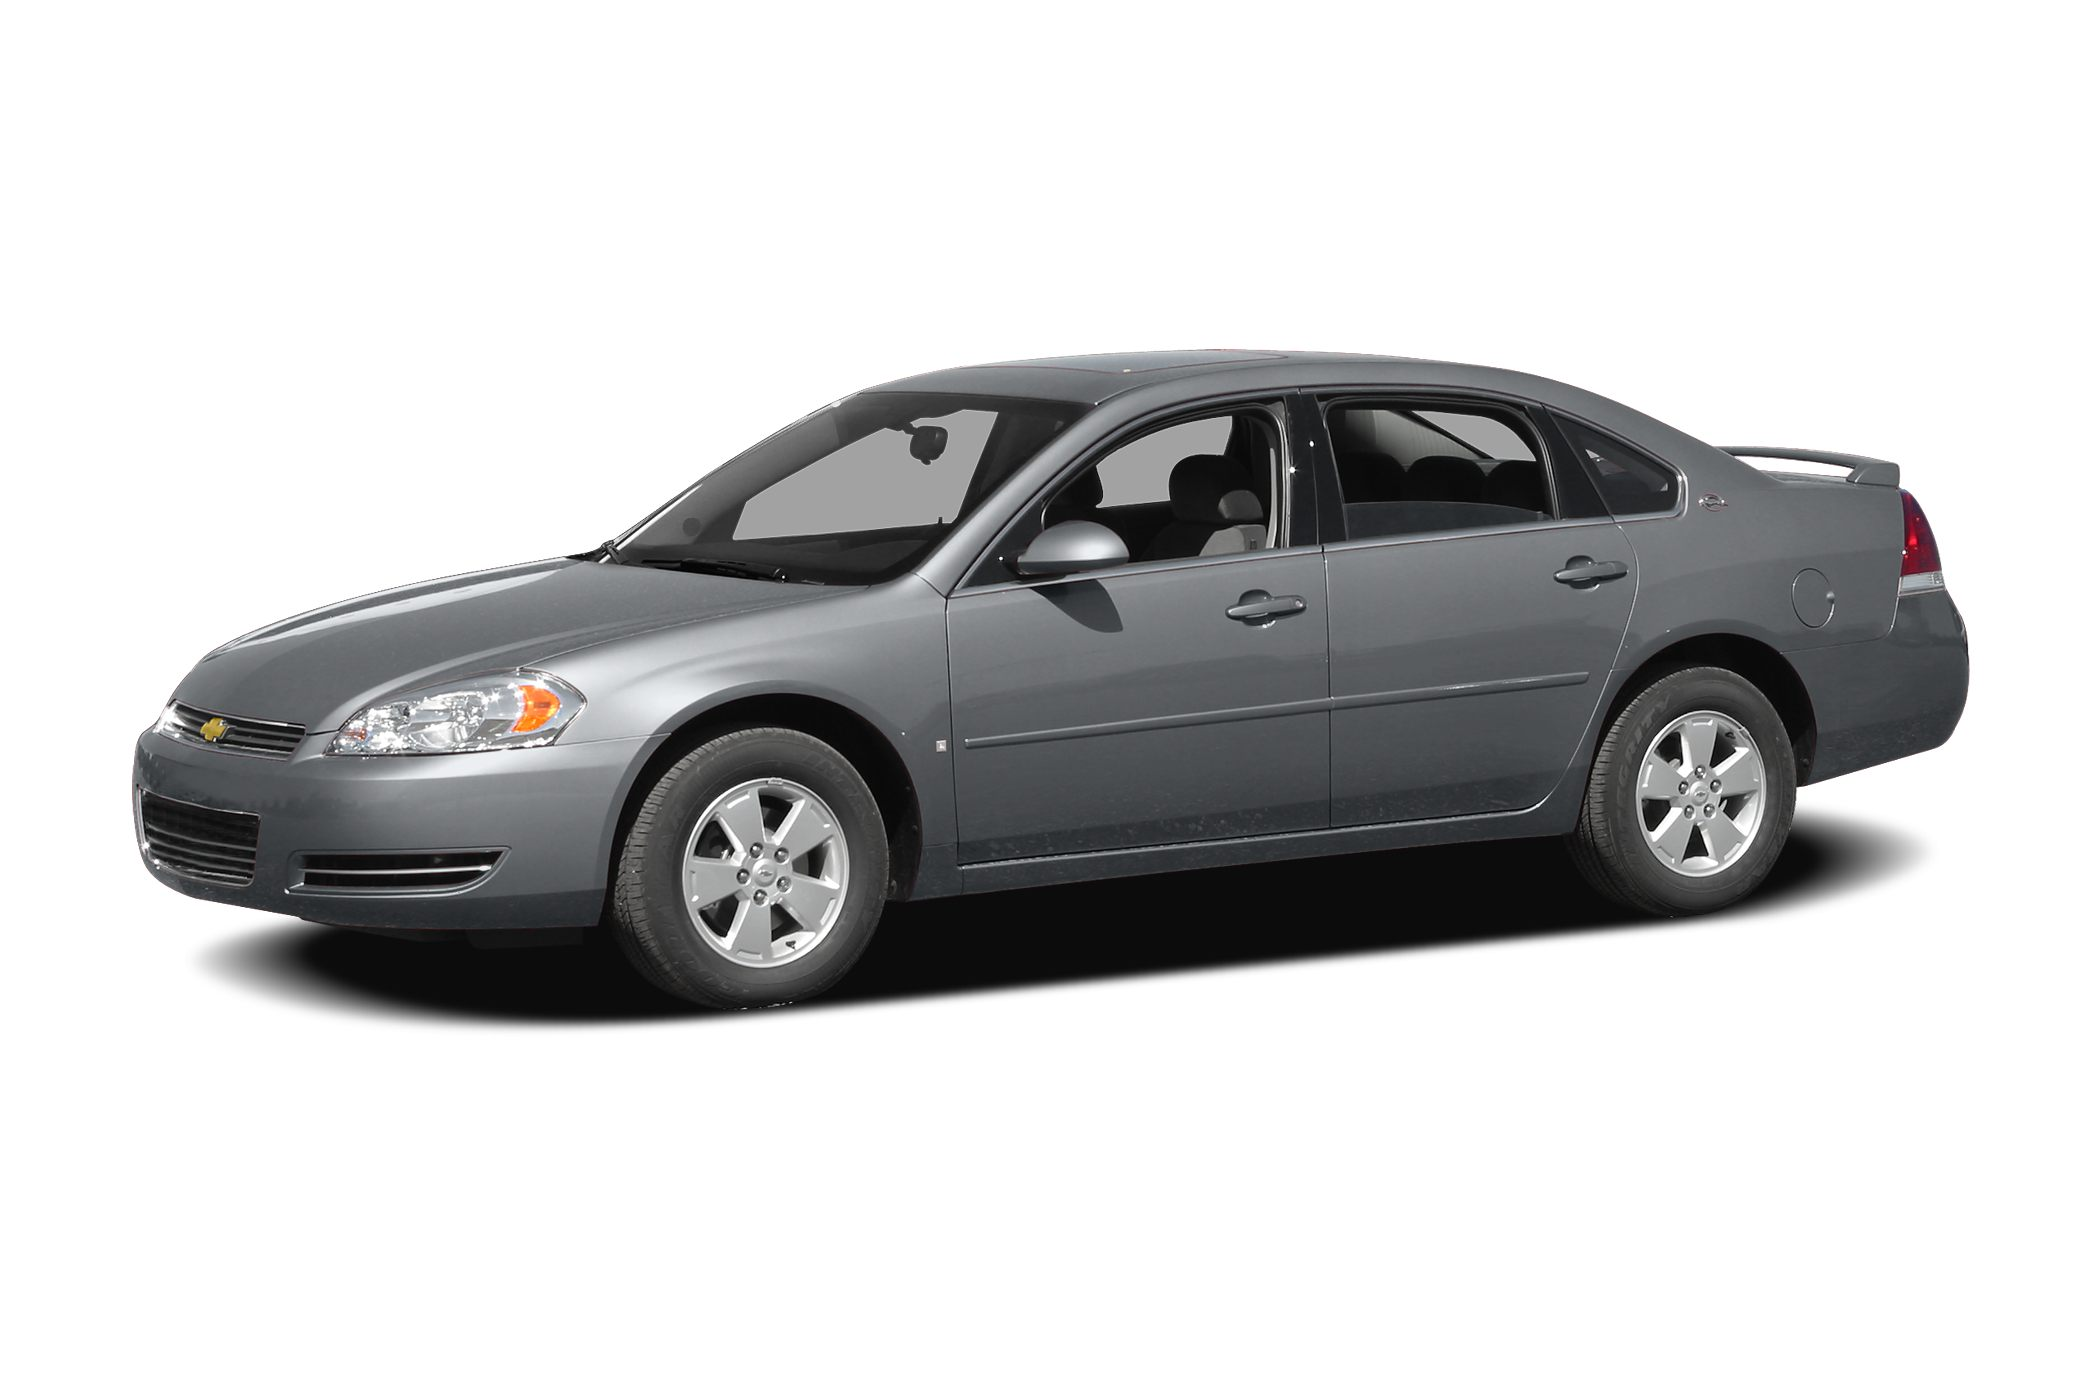 2008 Chevrolet Impala SS 4dr Sedan Specs and Prices